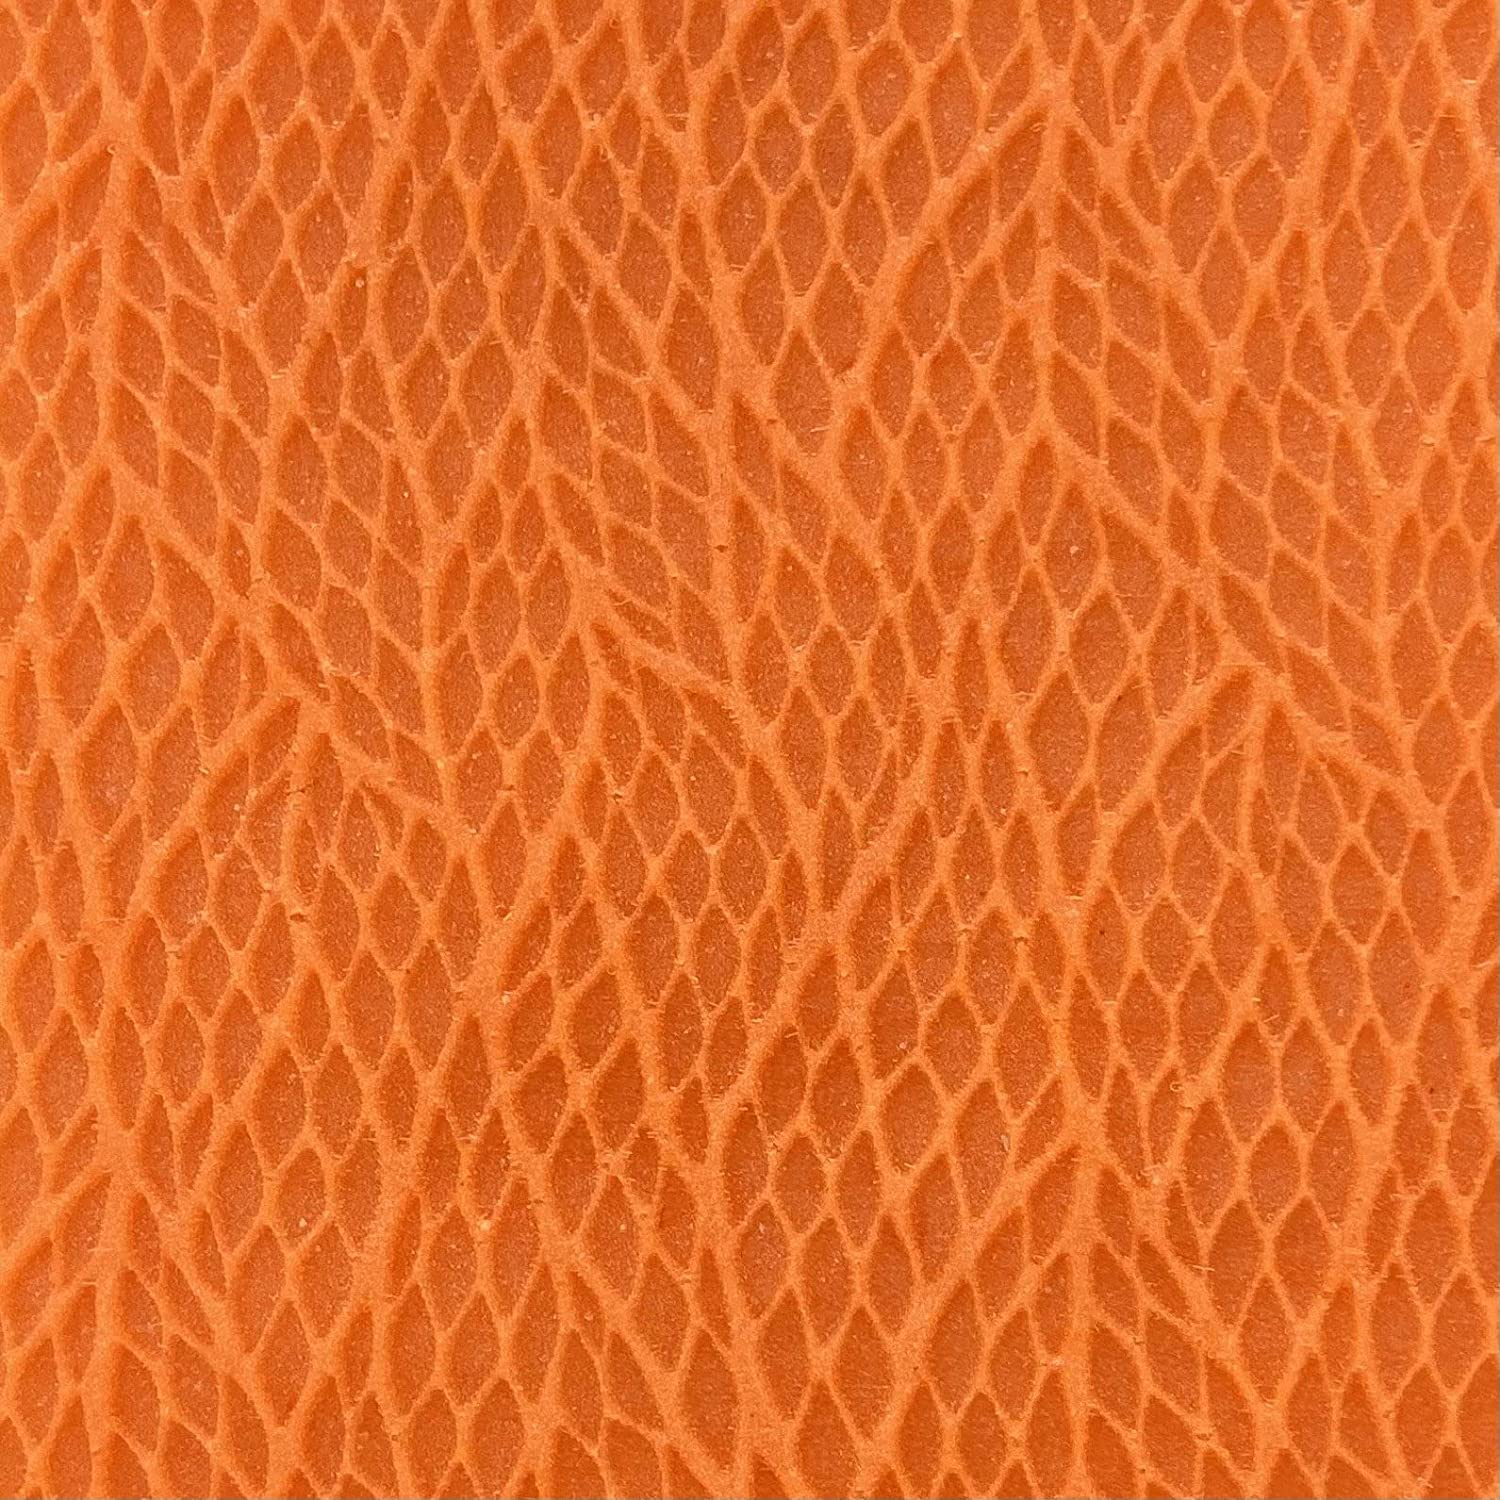 Texture Sheet Lizard Skin Scales Max 59% OFF for Polymer Large-scale sale Mixed Medi Clay and